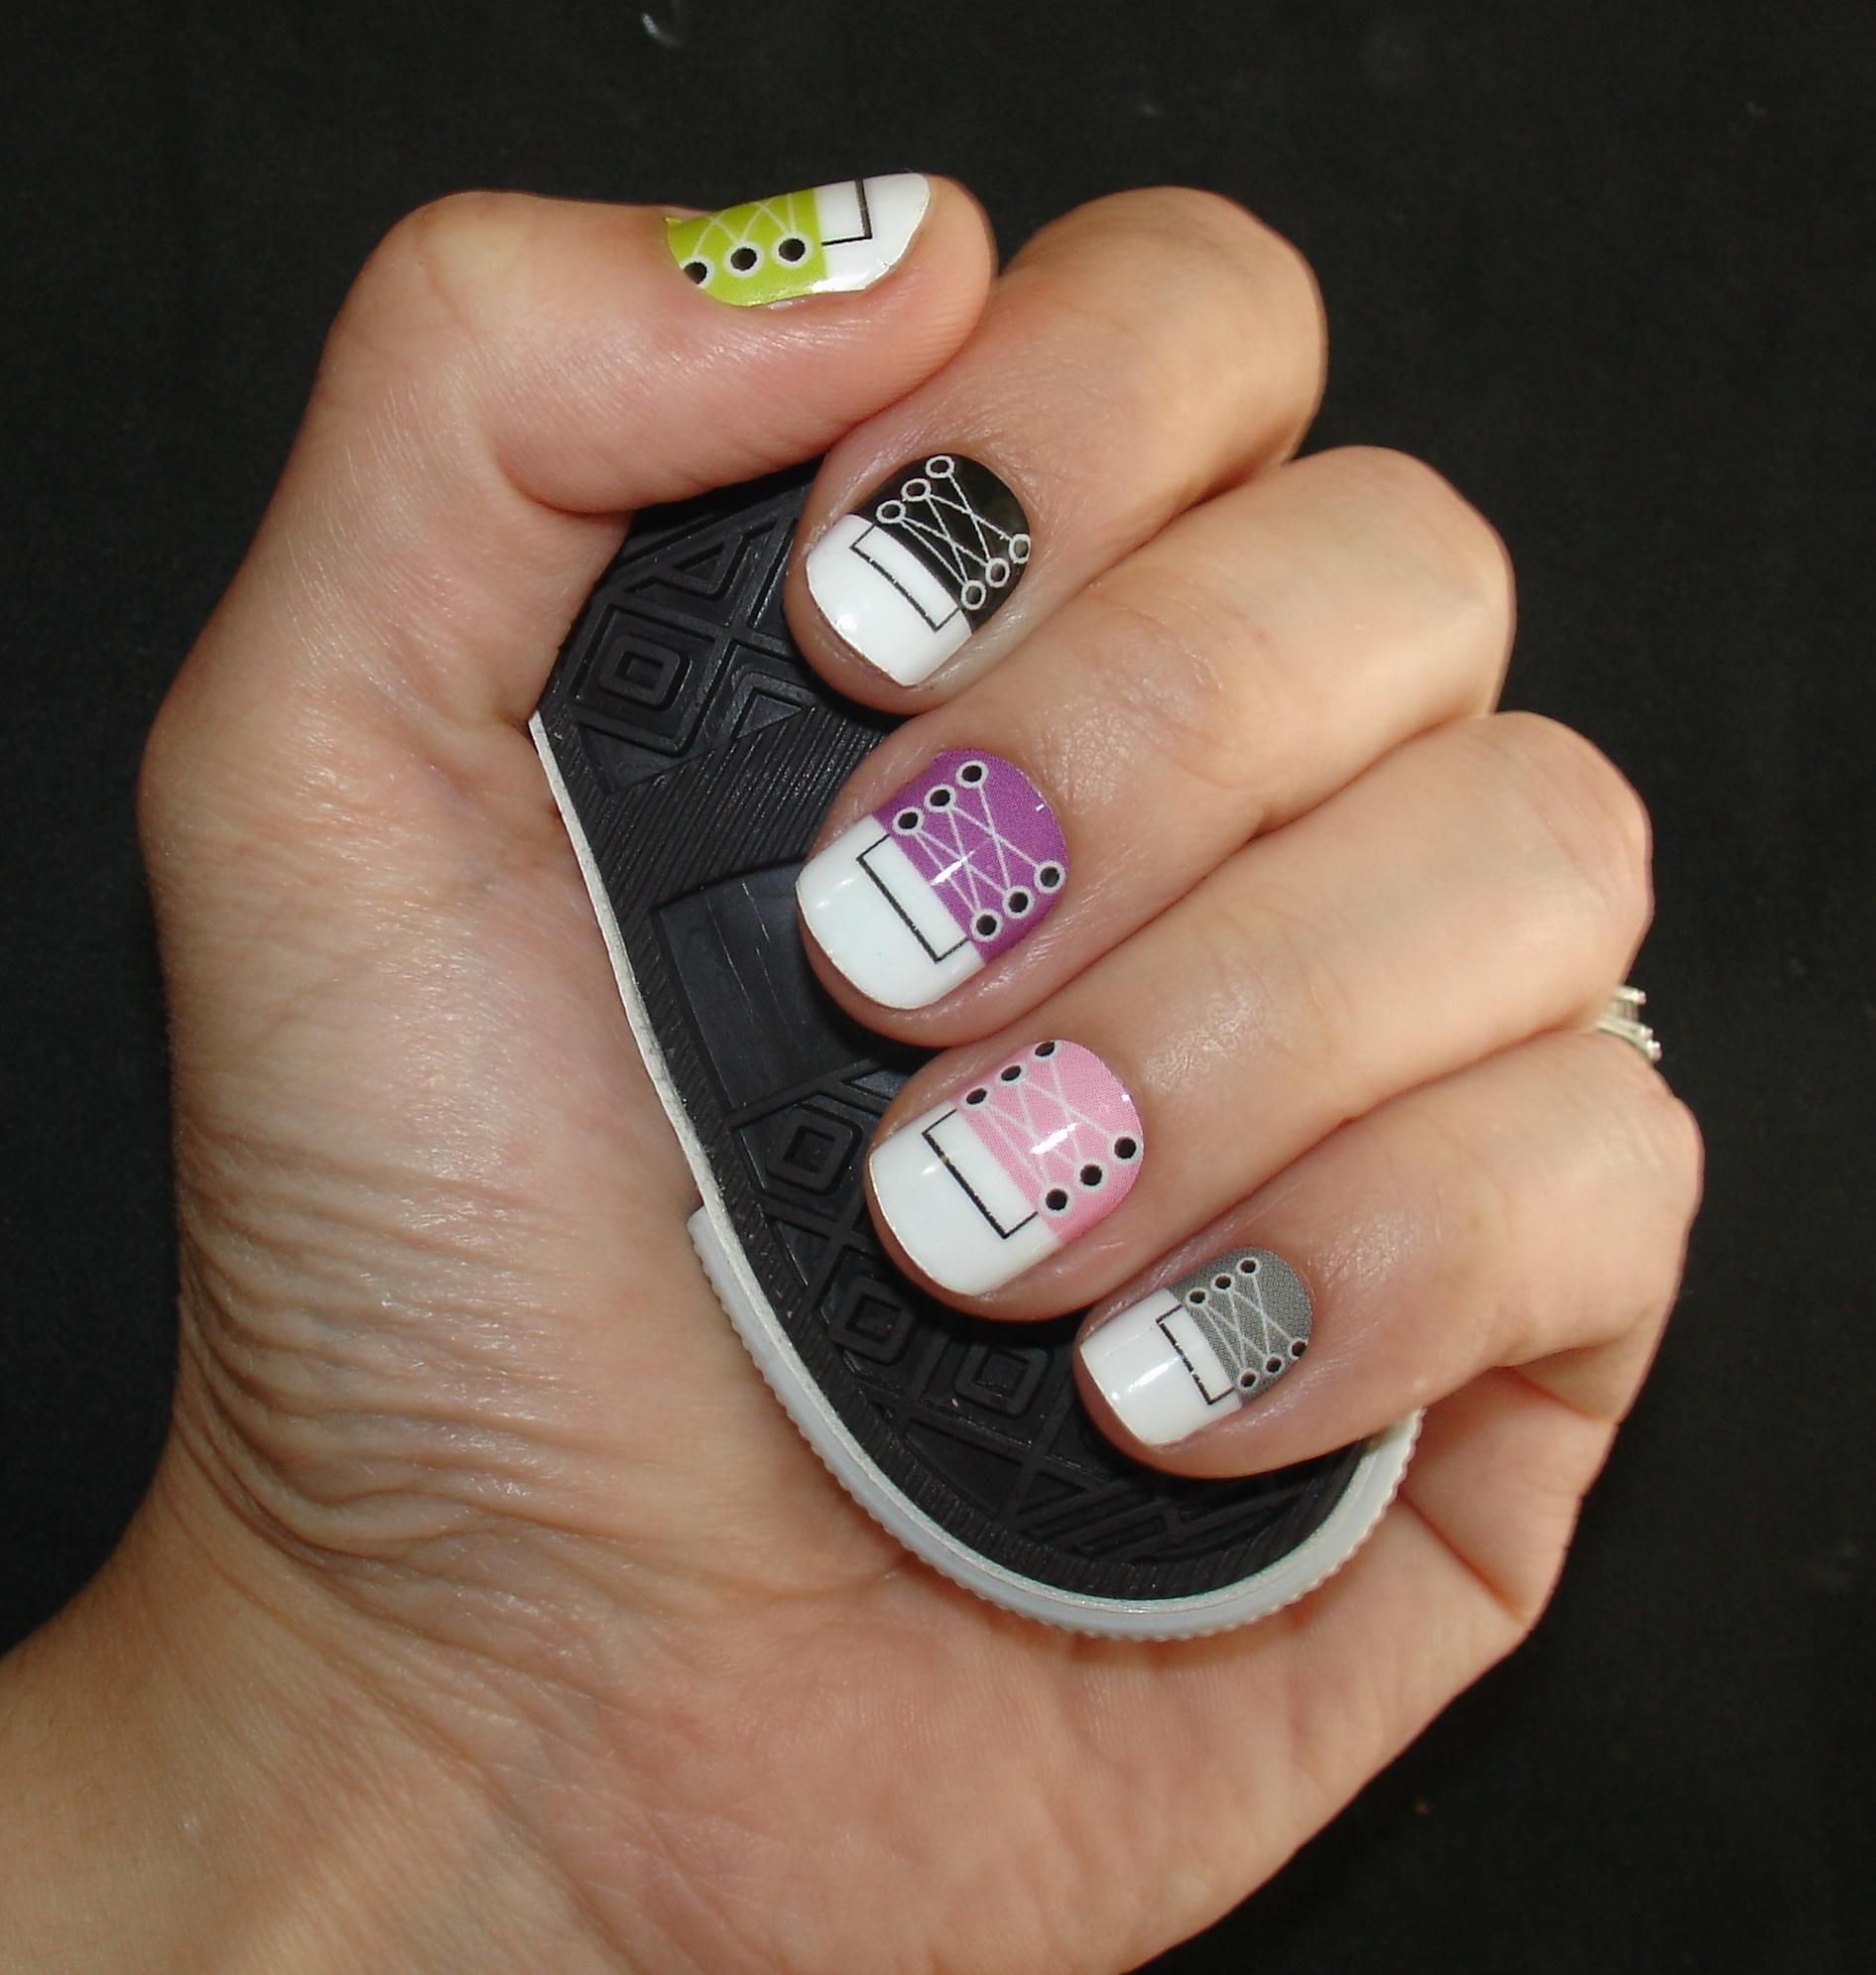 Nail Art Couture Converse Nail Art: Converse Sneakers Nail Art Vinyl Wraps Shilds From